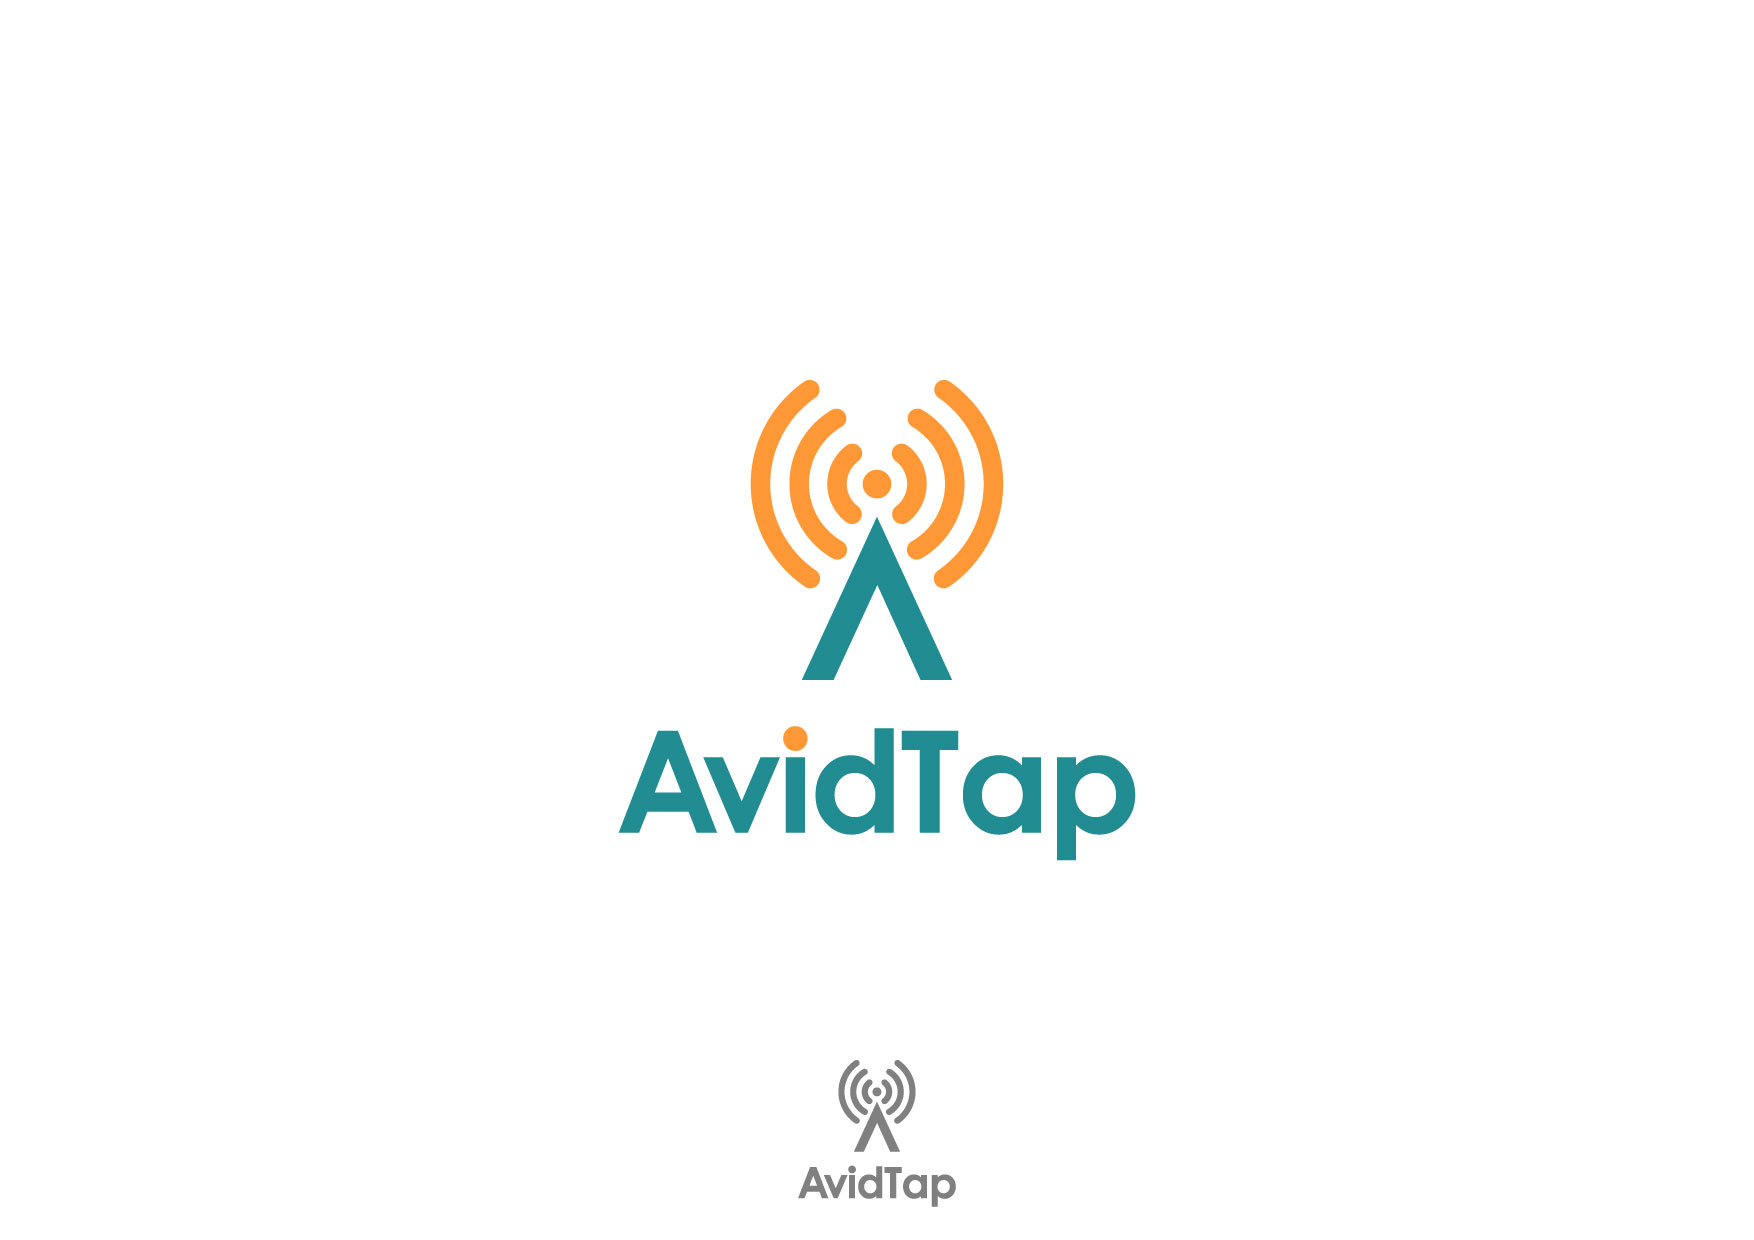 Logo Design by Nurgalih Destianto - Entry No. 99 in the Logo Design Contest Imaginative Logo Design for AvidTap.